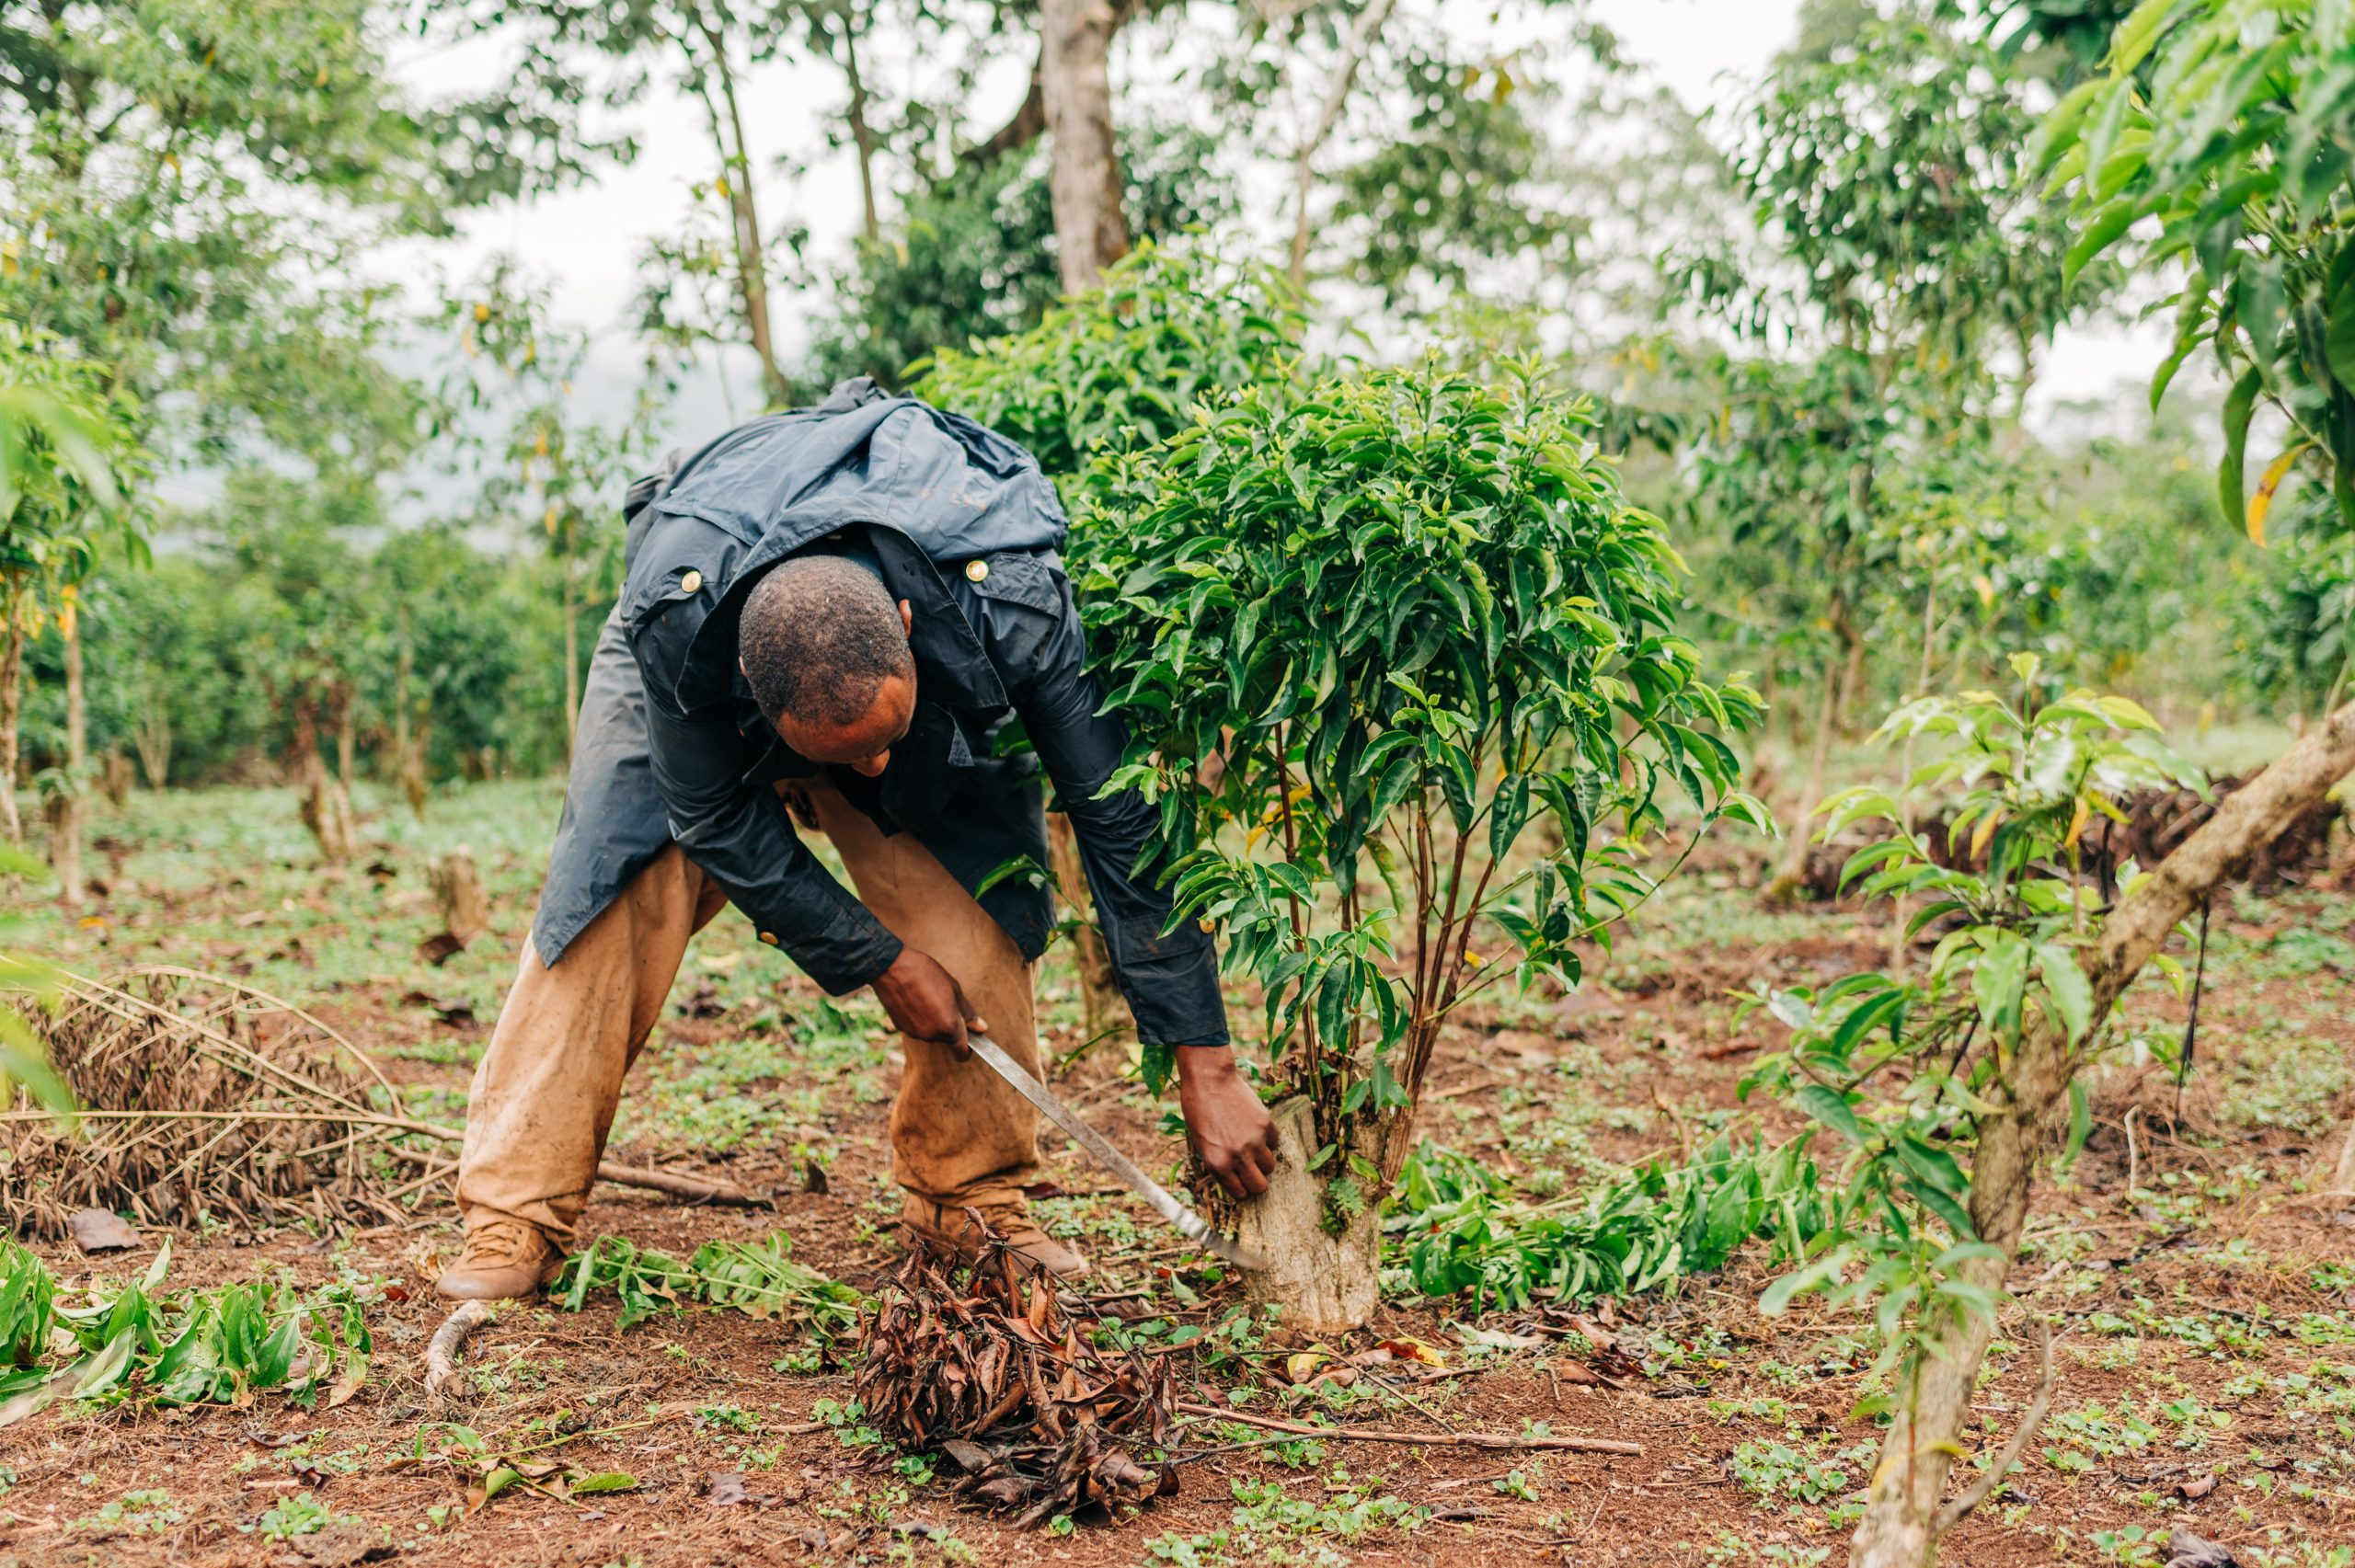 Case Study - Human-Centered Design - A coffee farmer in Ethiopia tends to his coffee trees.